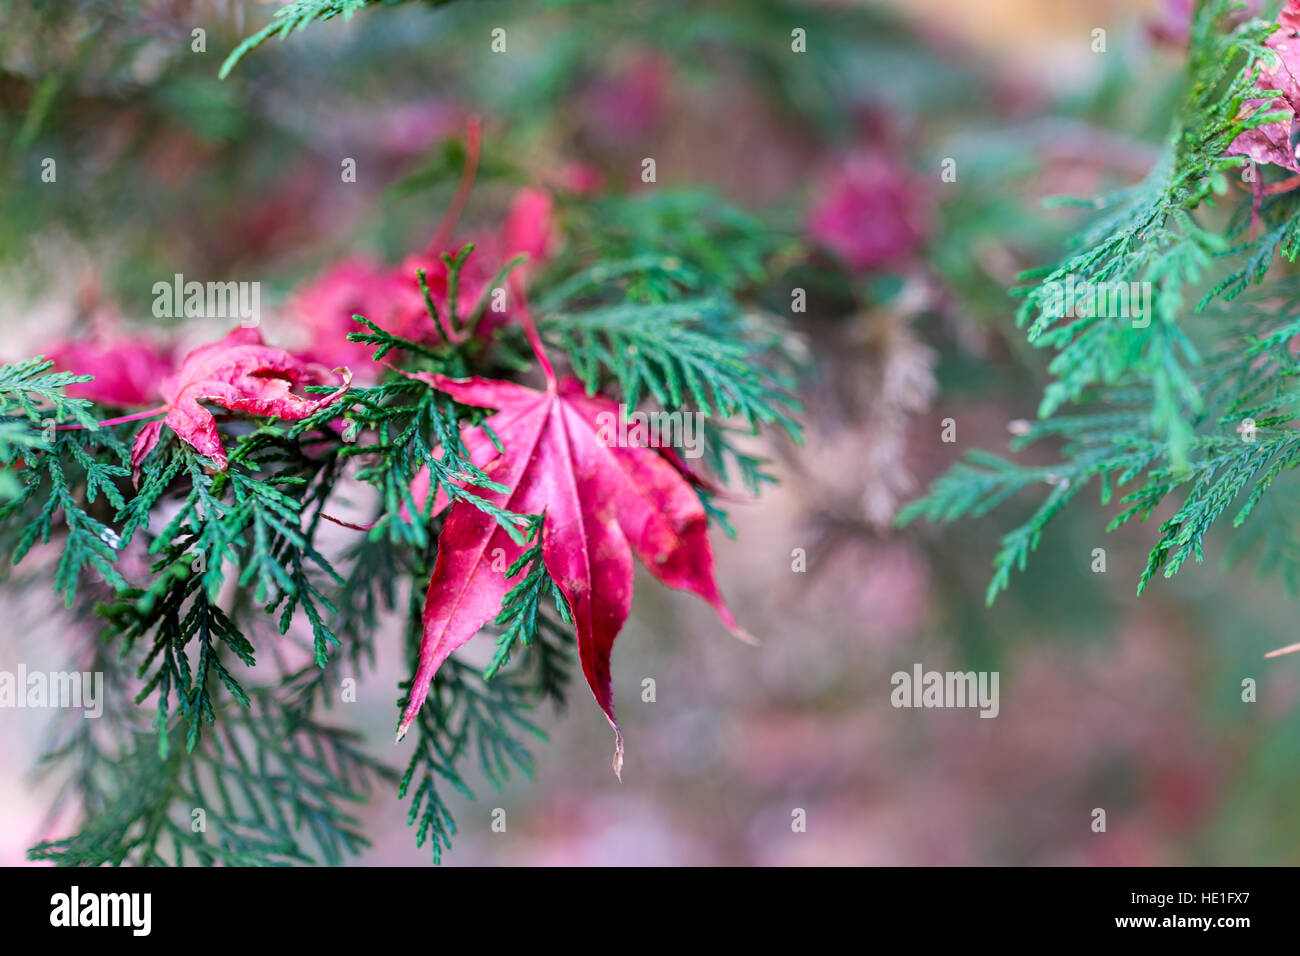 Pink pine needles stock photos pink pine needles stock images alamy closeup of pink maple leaf on coniferous pine tree with fallen leaves on ground stock mightylinksfo